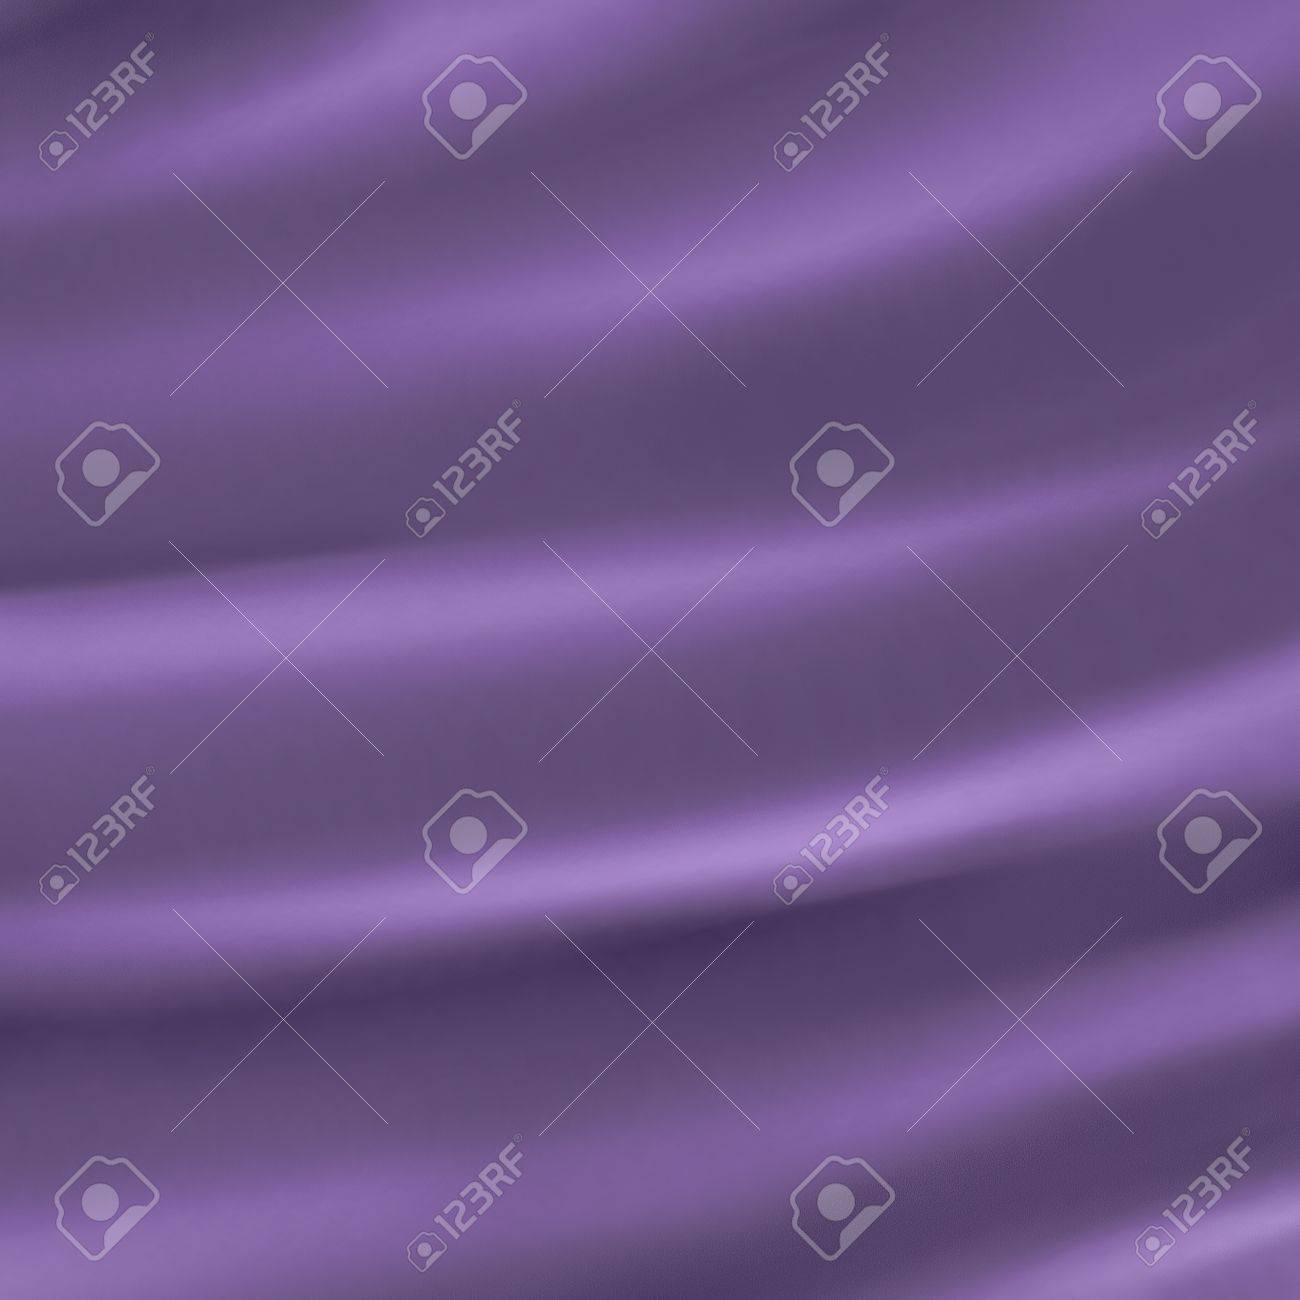 abstract purple background cloth illustration of dark green folds creases in silky velvet or satin material for elegant royal background decoration design for dark luxurious background web template Stock Illustration - 14793044